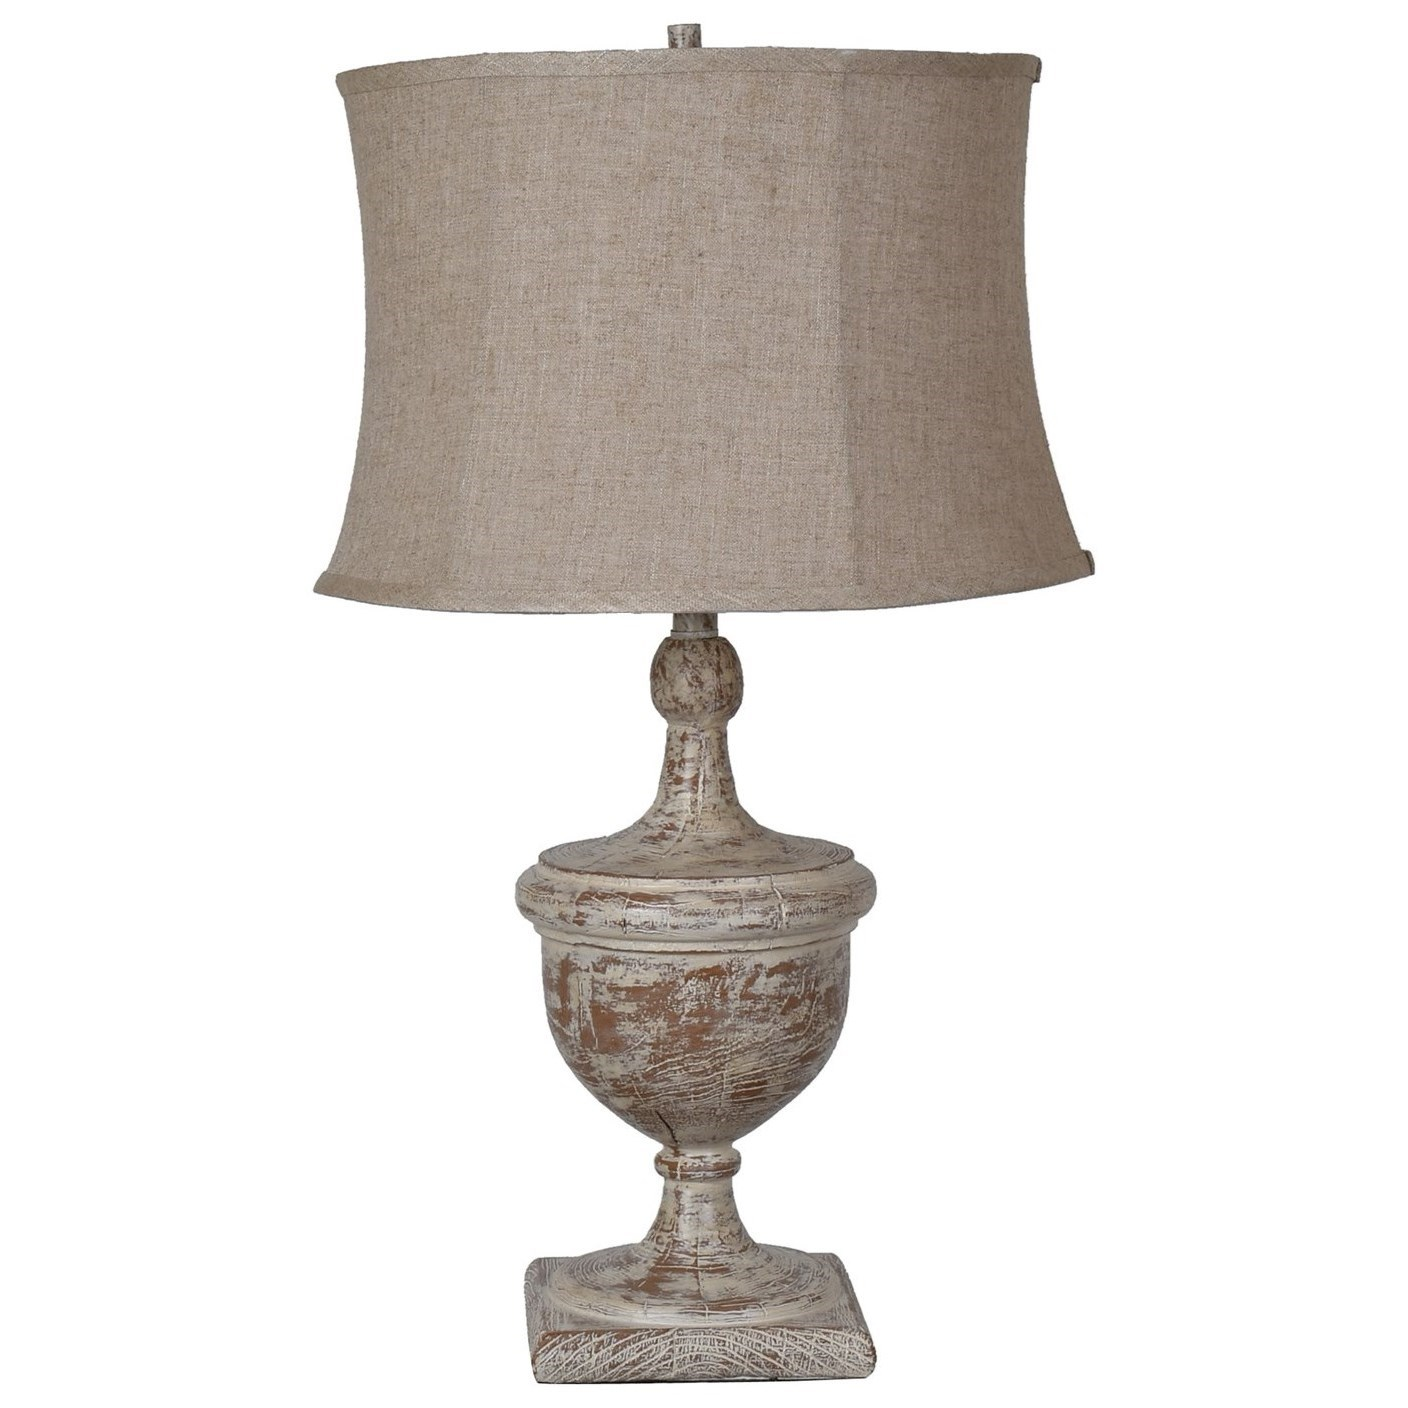 Crestview Collection Lighting Dumont Table Lamp  - Item Number: CVAVP645